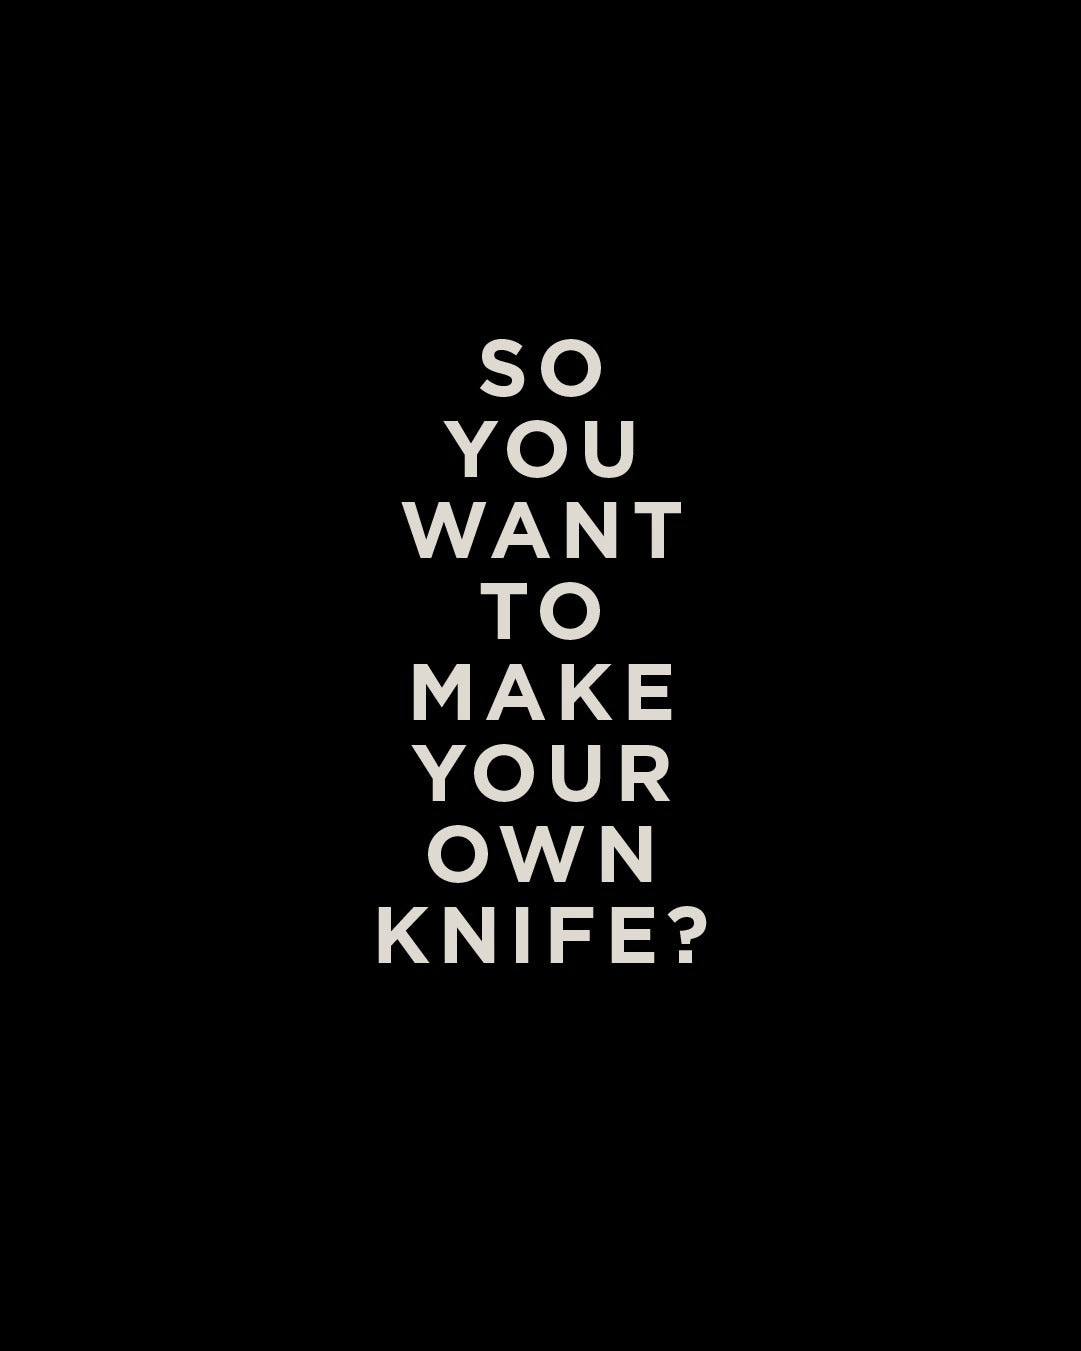 MAKE YOUR OWN KNIFE WORKSHOP